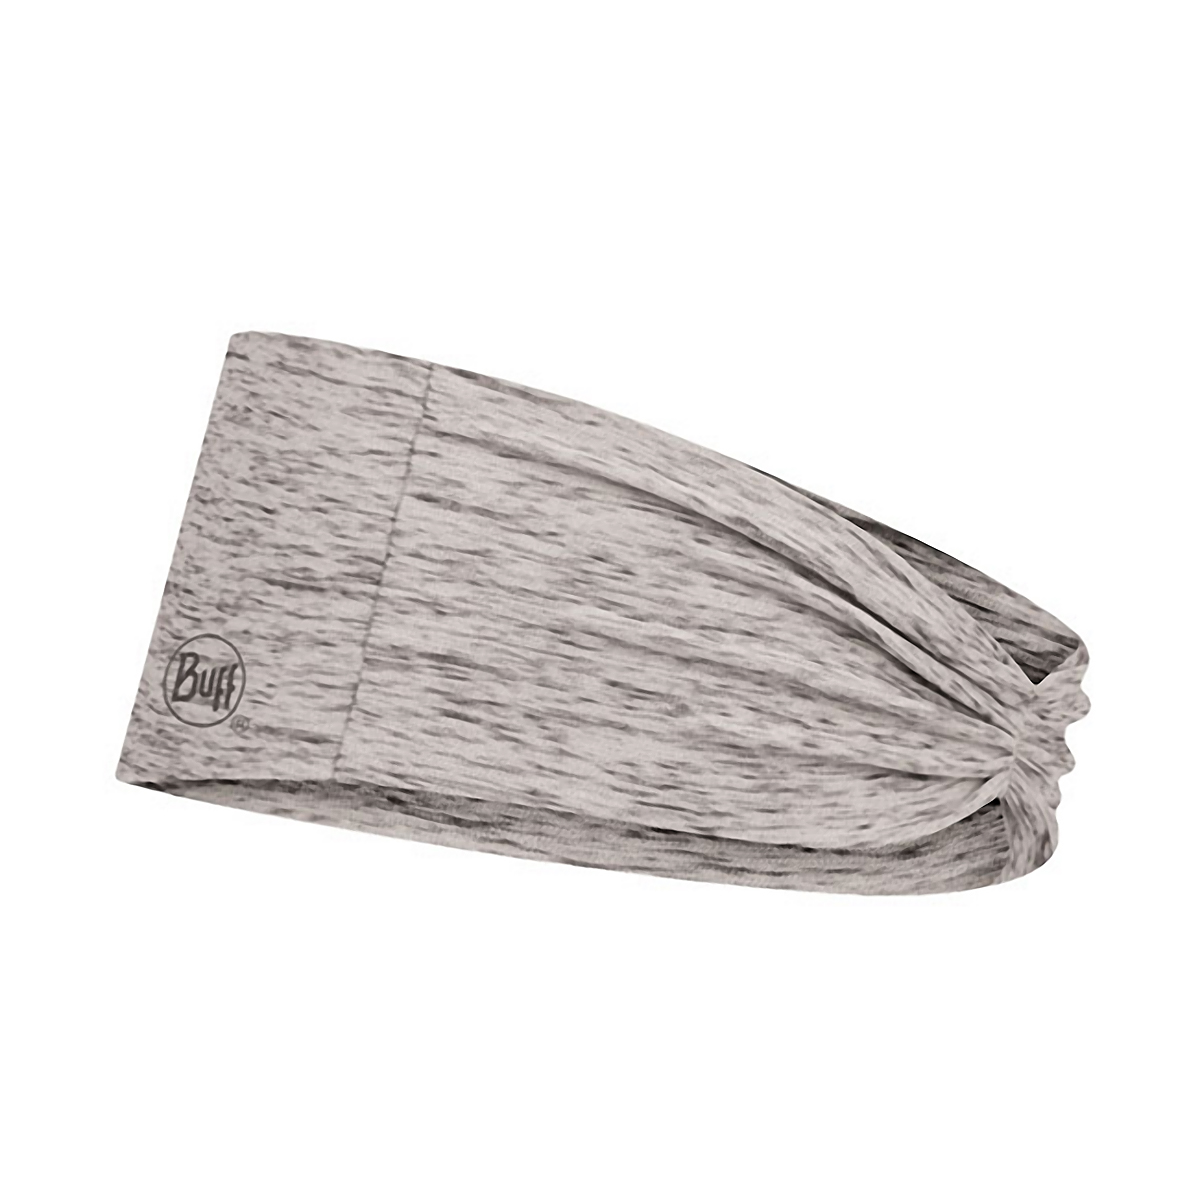 Buff Coolnet UV+ Tapered Headband - Color: Grey Heather, Grey Heather, large, image 1